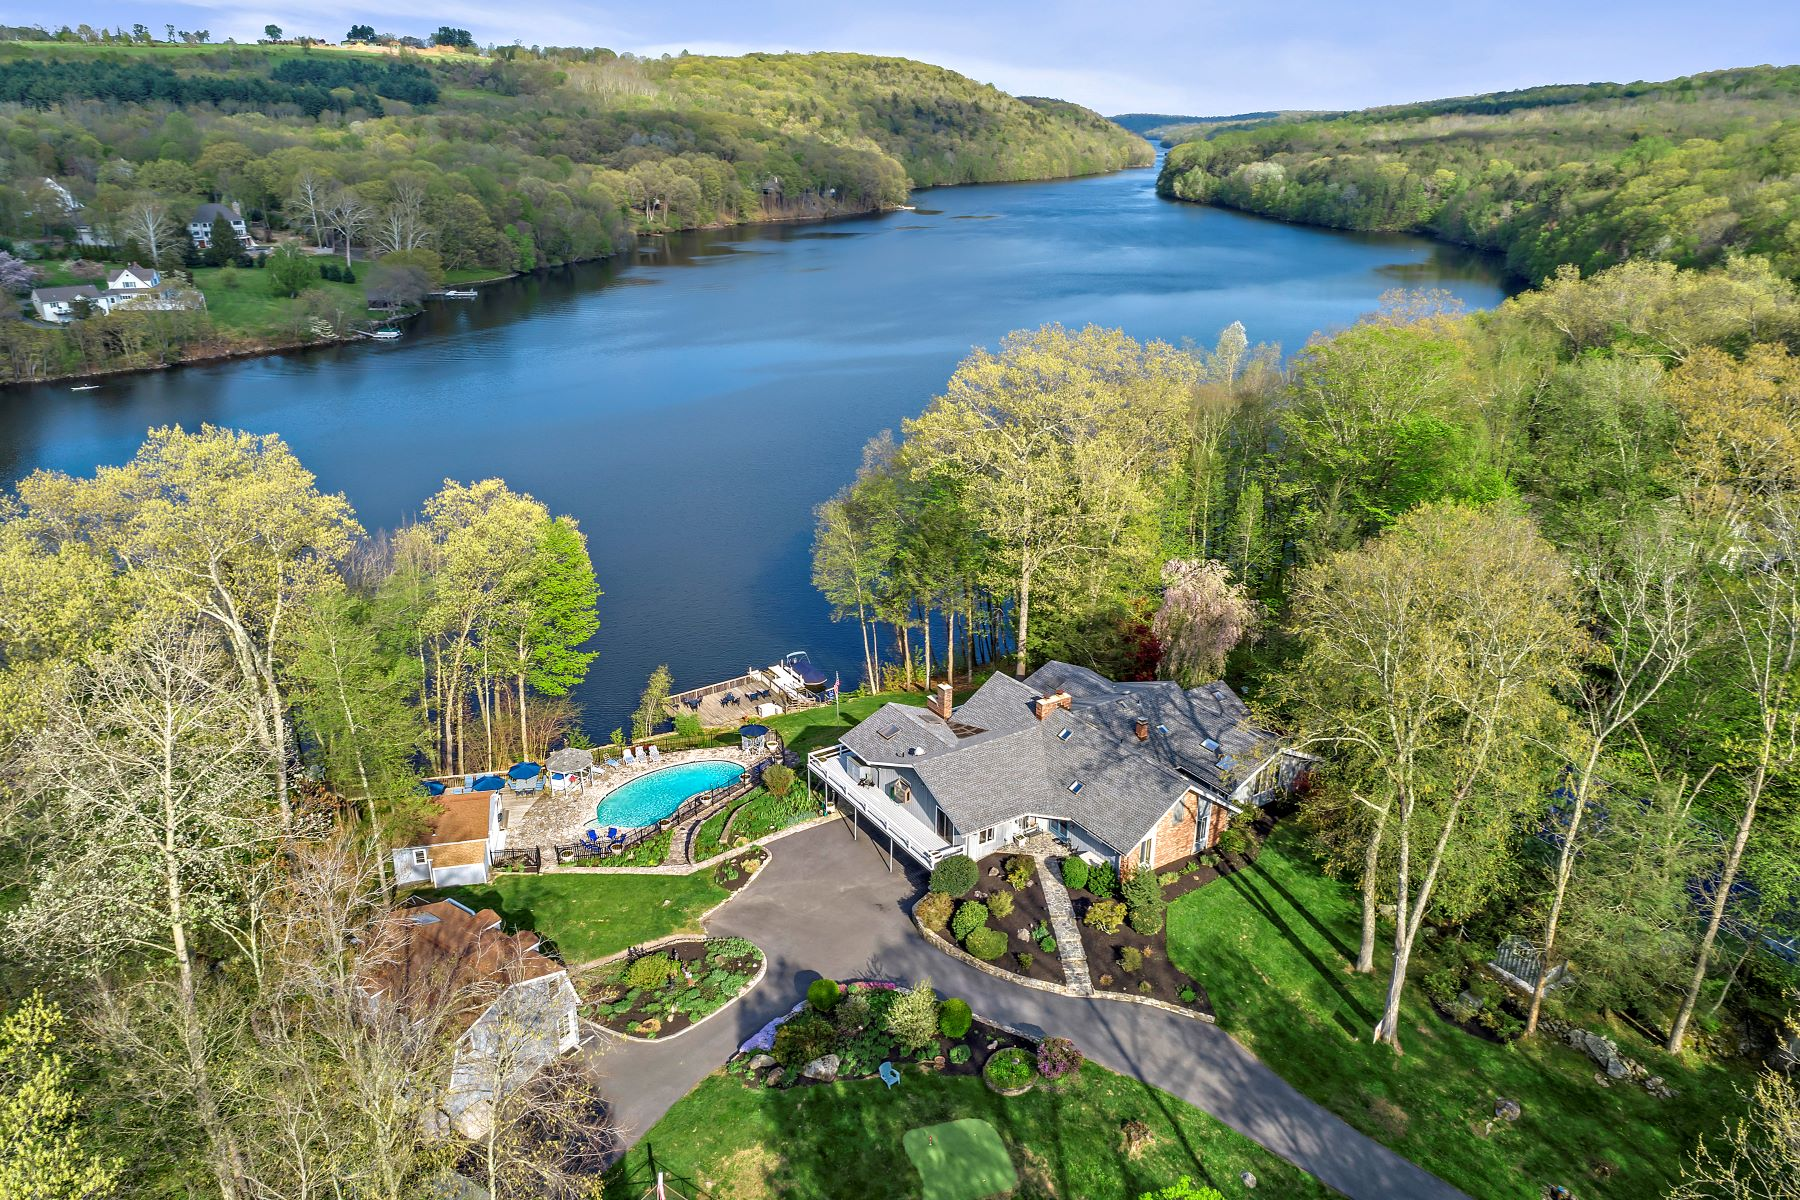 Single Family Home for Sale at Spectacular Waterfront Home 26 Hidden Brook Drive Brookfield, Connecticut 06804 United States